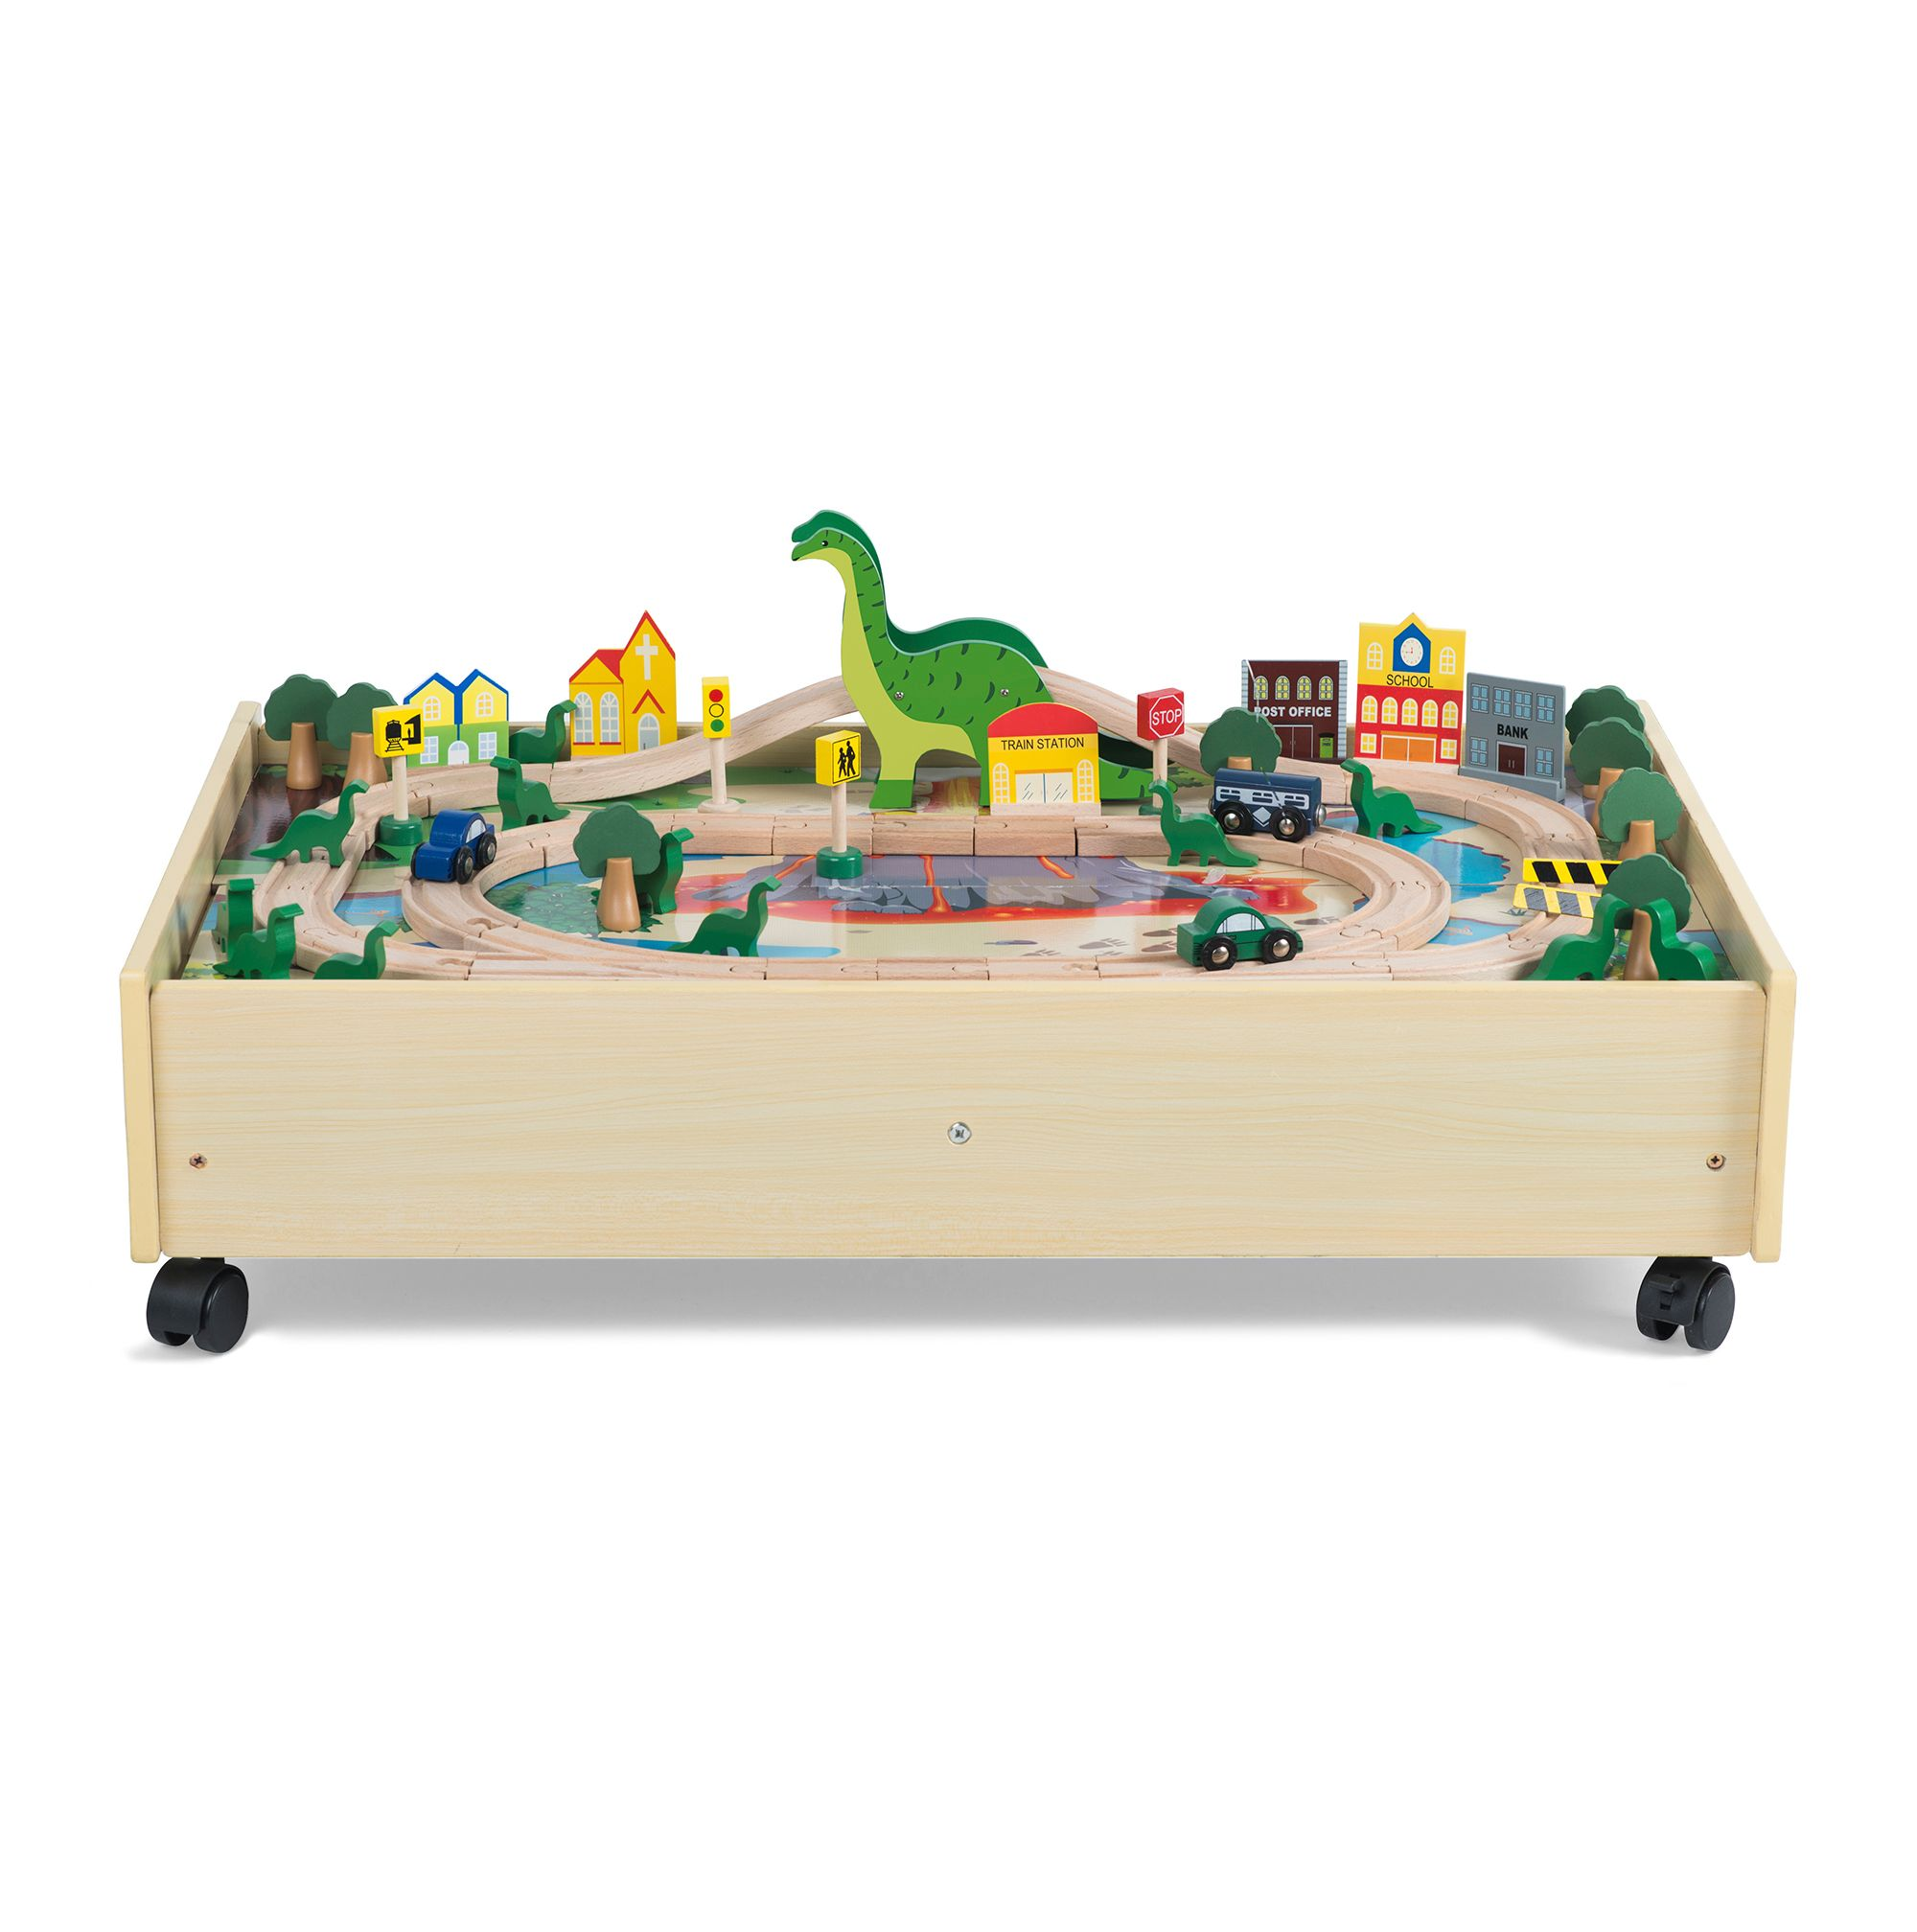 Image of Plum Roar-a-Saur Wooden Play